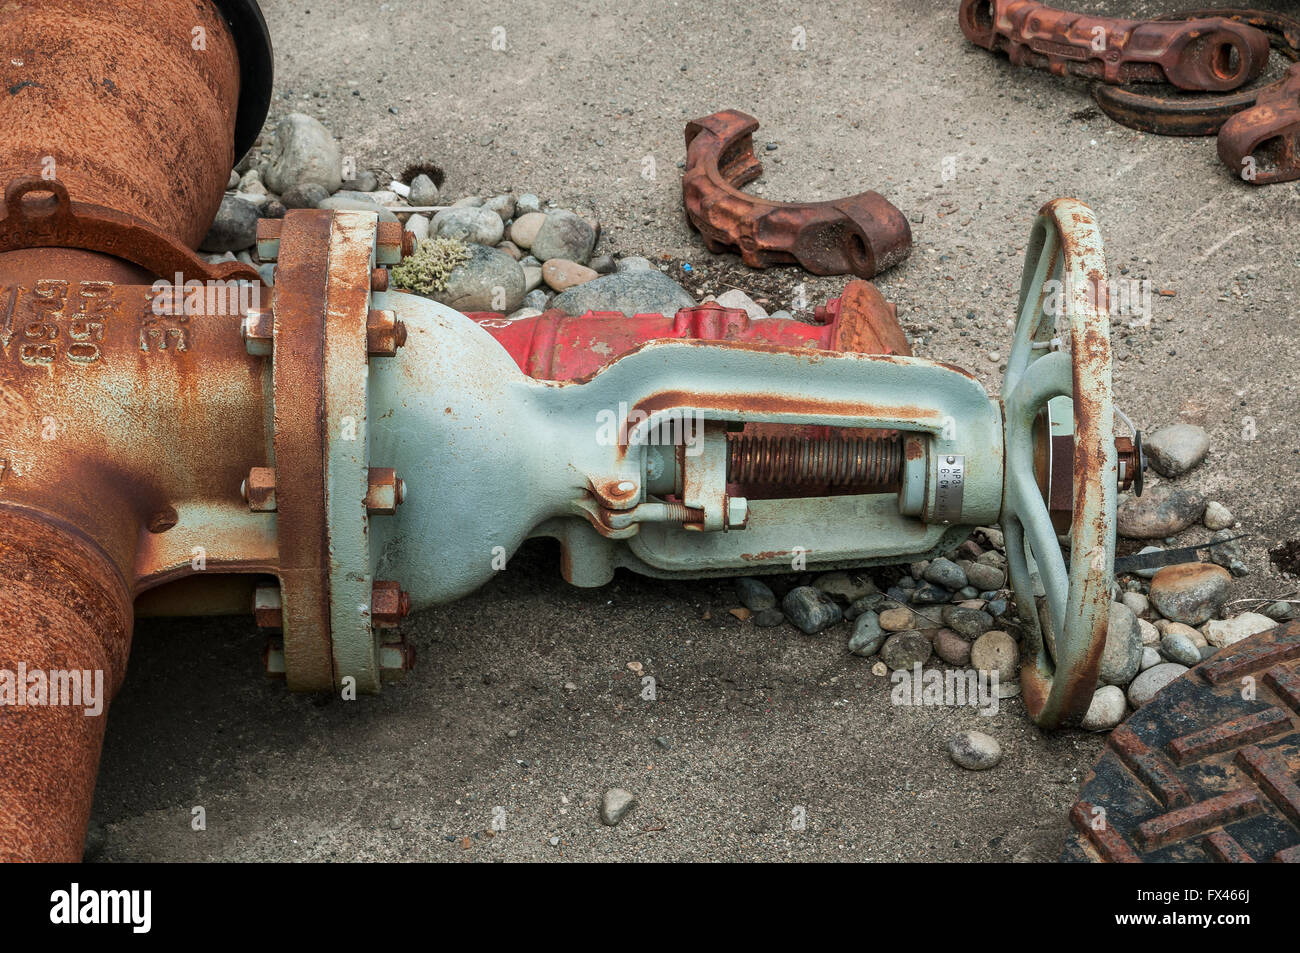 Gate valve laying on ground at Satsop Development Park in Western Washington State. - Stock Image